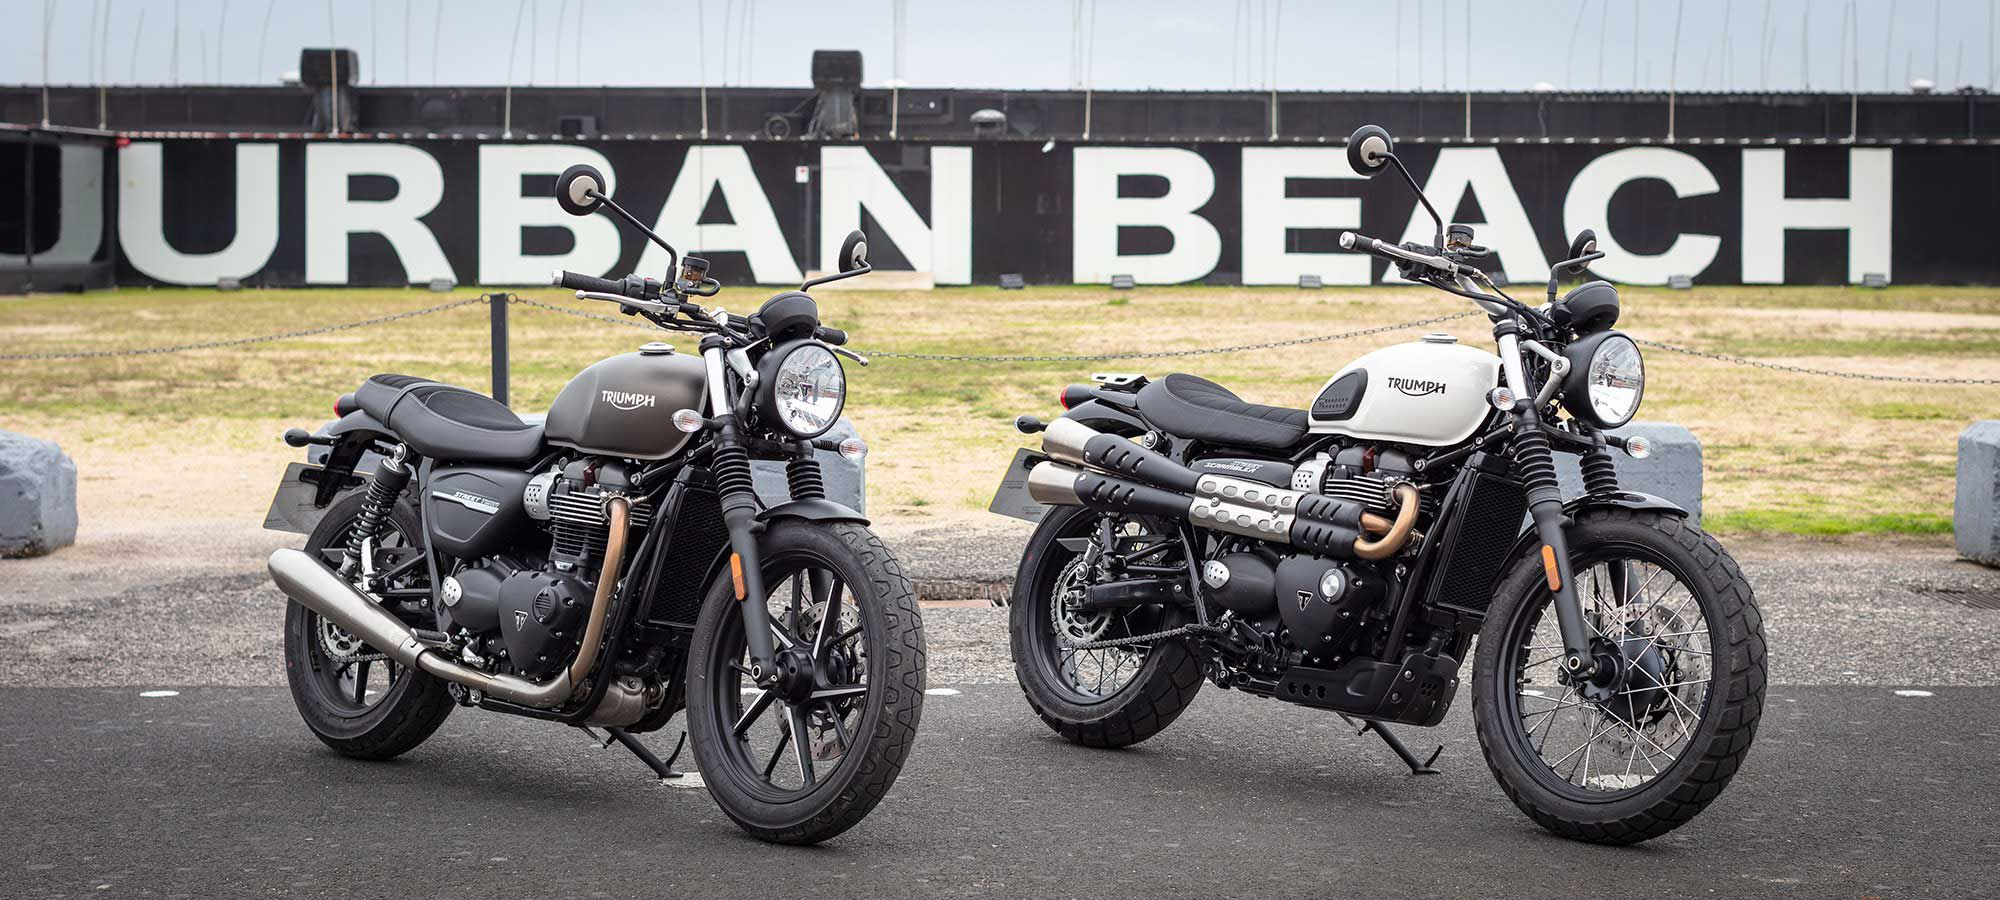 2019 Triumph Street Twin And Street Scrambler Review Cycle World